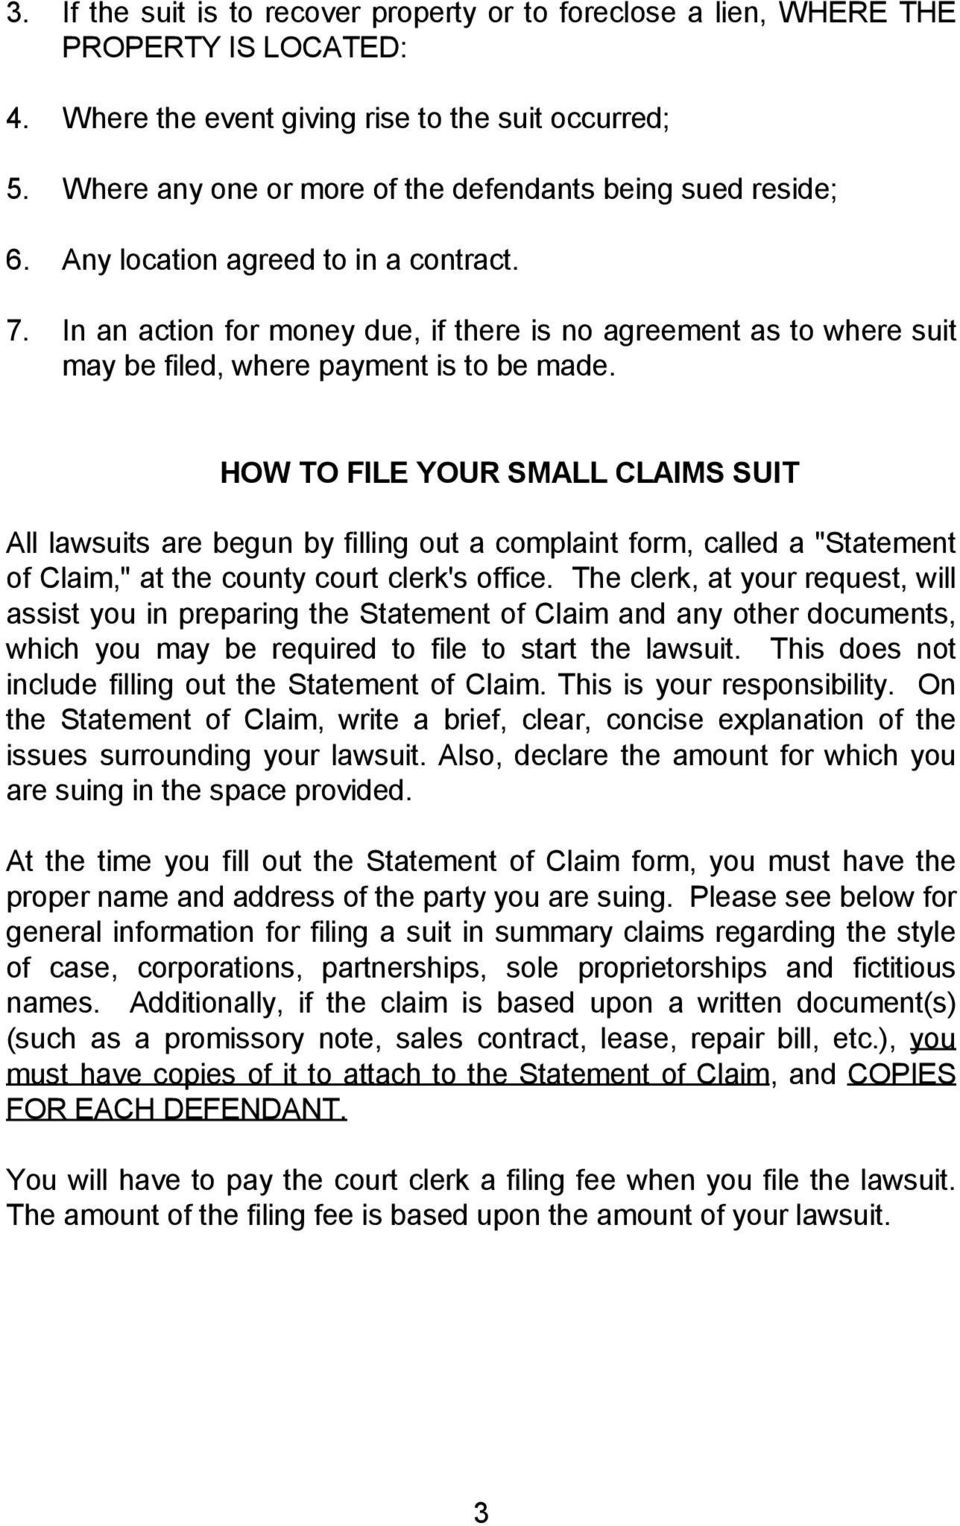 In an action for money due, if there is no agreement as to where suit may be filed, where payment is to be made.